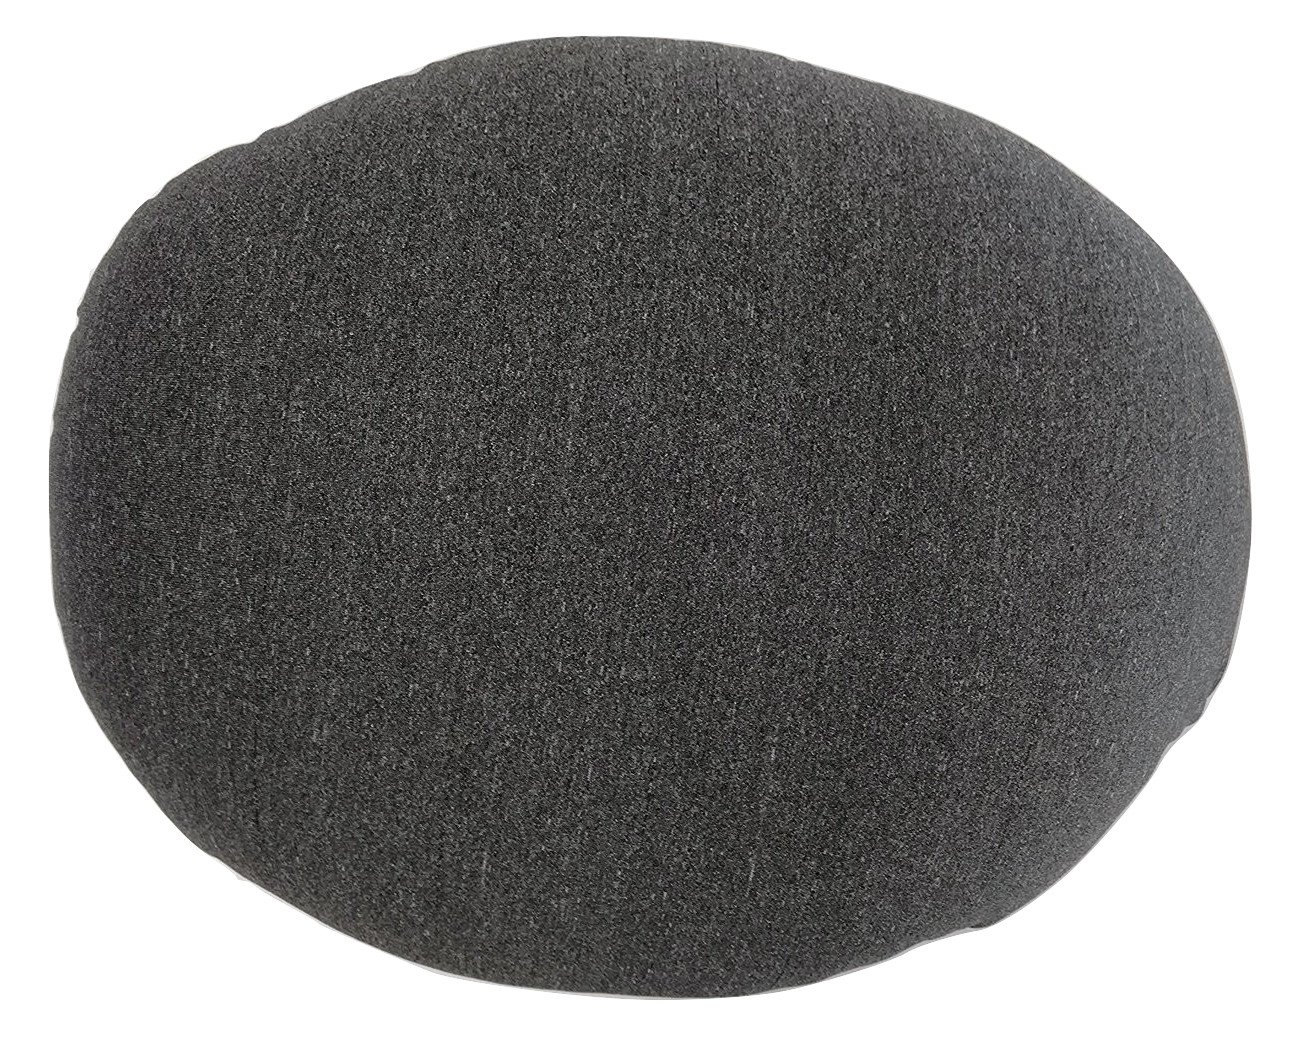 "Tache Micro Bead Solid Grey Realistic Stone Pillow - Squishy Realistic Novelty Pebble Rock Nature Décor - Round Cushion 12x16"" - Nature-inspired Design: These stone pillows were designed to resemble pebble stones; featuring a realistic appearance with the softness and comfort of a pillow. Micro-bead filling: The micro beads are super comfortable and promote relaxation. They also help keep the pillow breathable and cool along with its spandex outer shell. The fabric is stretchy and micro beads are squishy making it easy for versatile use. Uses: These pillows can be used as floor pillows, chair cushions, throw pillows, also as props for a photo studio or play. These are made from a very versatile and contemporary design that can be used in almost any room and for any purpose. - living-room-soft-furnishings, living-room, decorative-pillows - 81yzsHCp8HL -"